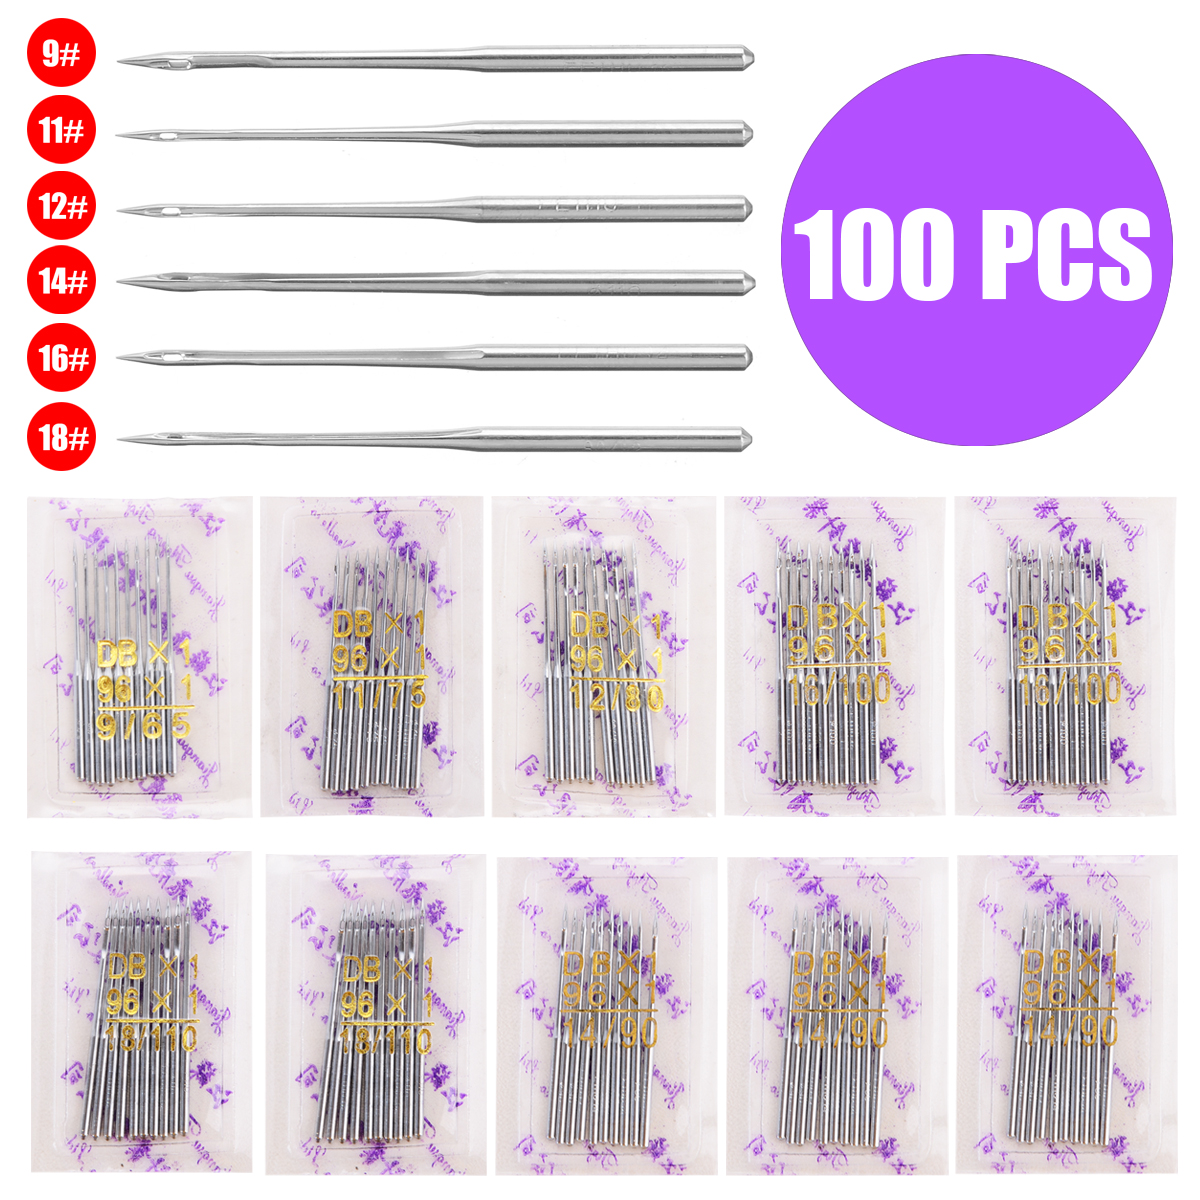 90//14 130//21 10 x 130//21 10pcs Assorted Home Sewing Machine Needles 75//11 100//16 110//18